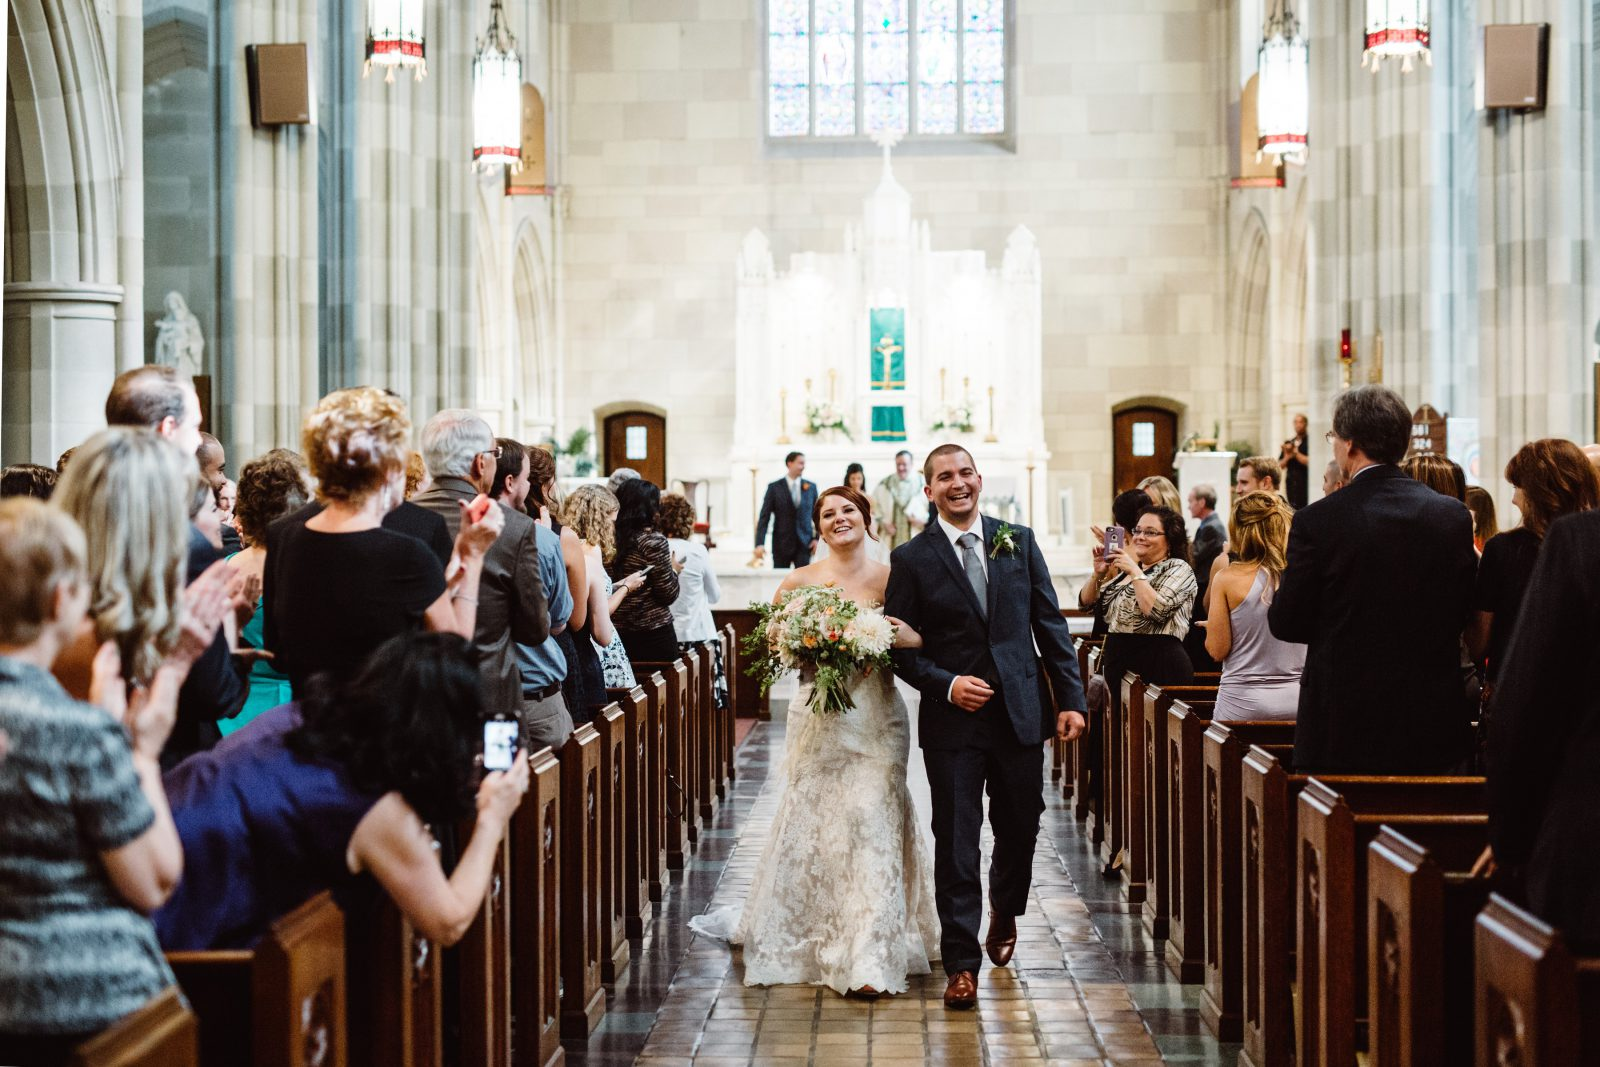 Bride and groom walk down the aisle after wedding ceremony at Saint Coleman's Church. Bouquet by Fresh Designs Florist. Photo by Ali & Paul Co.